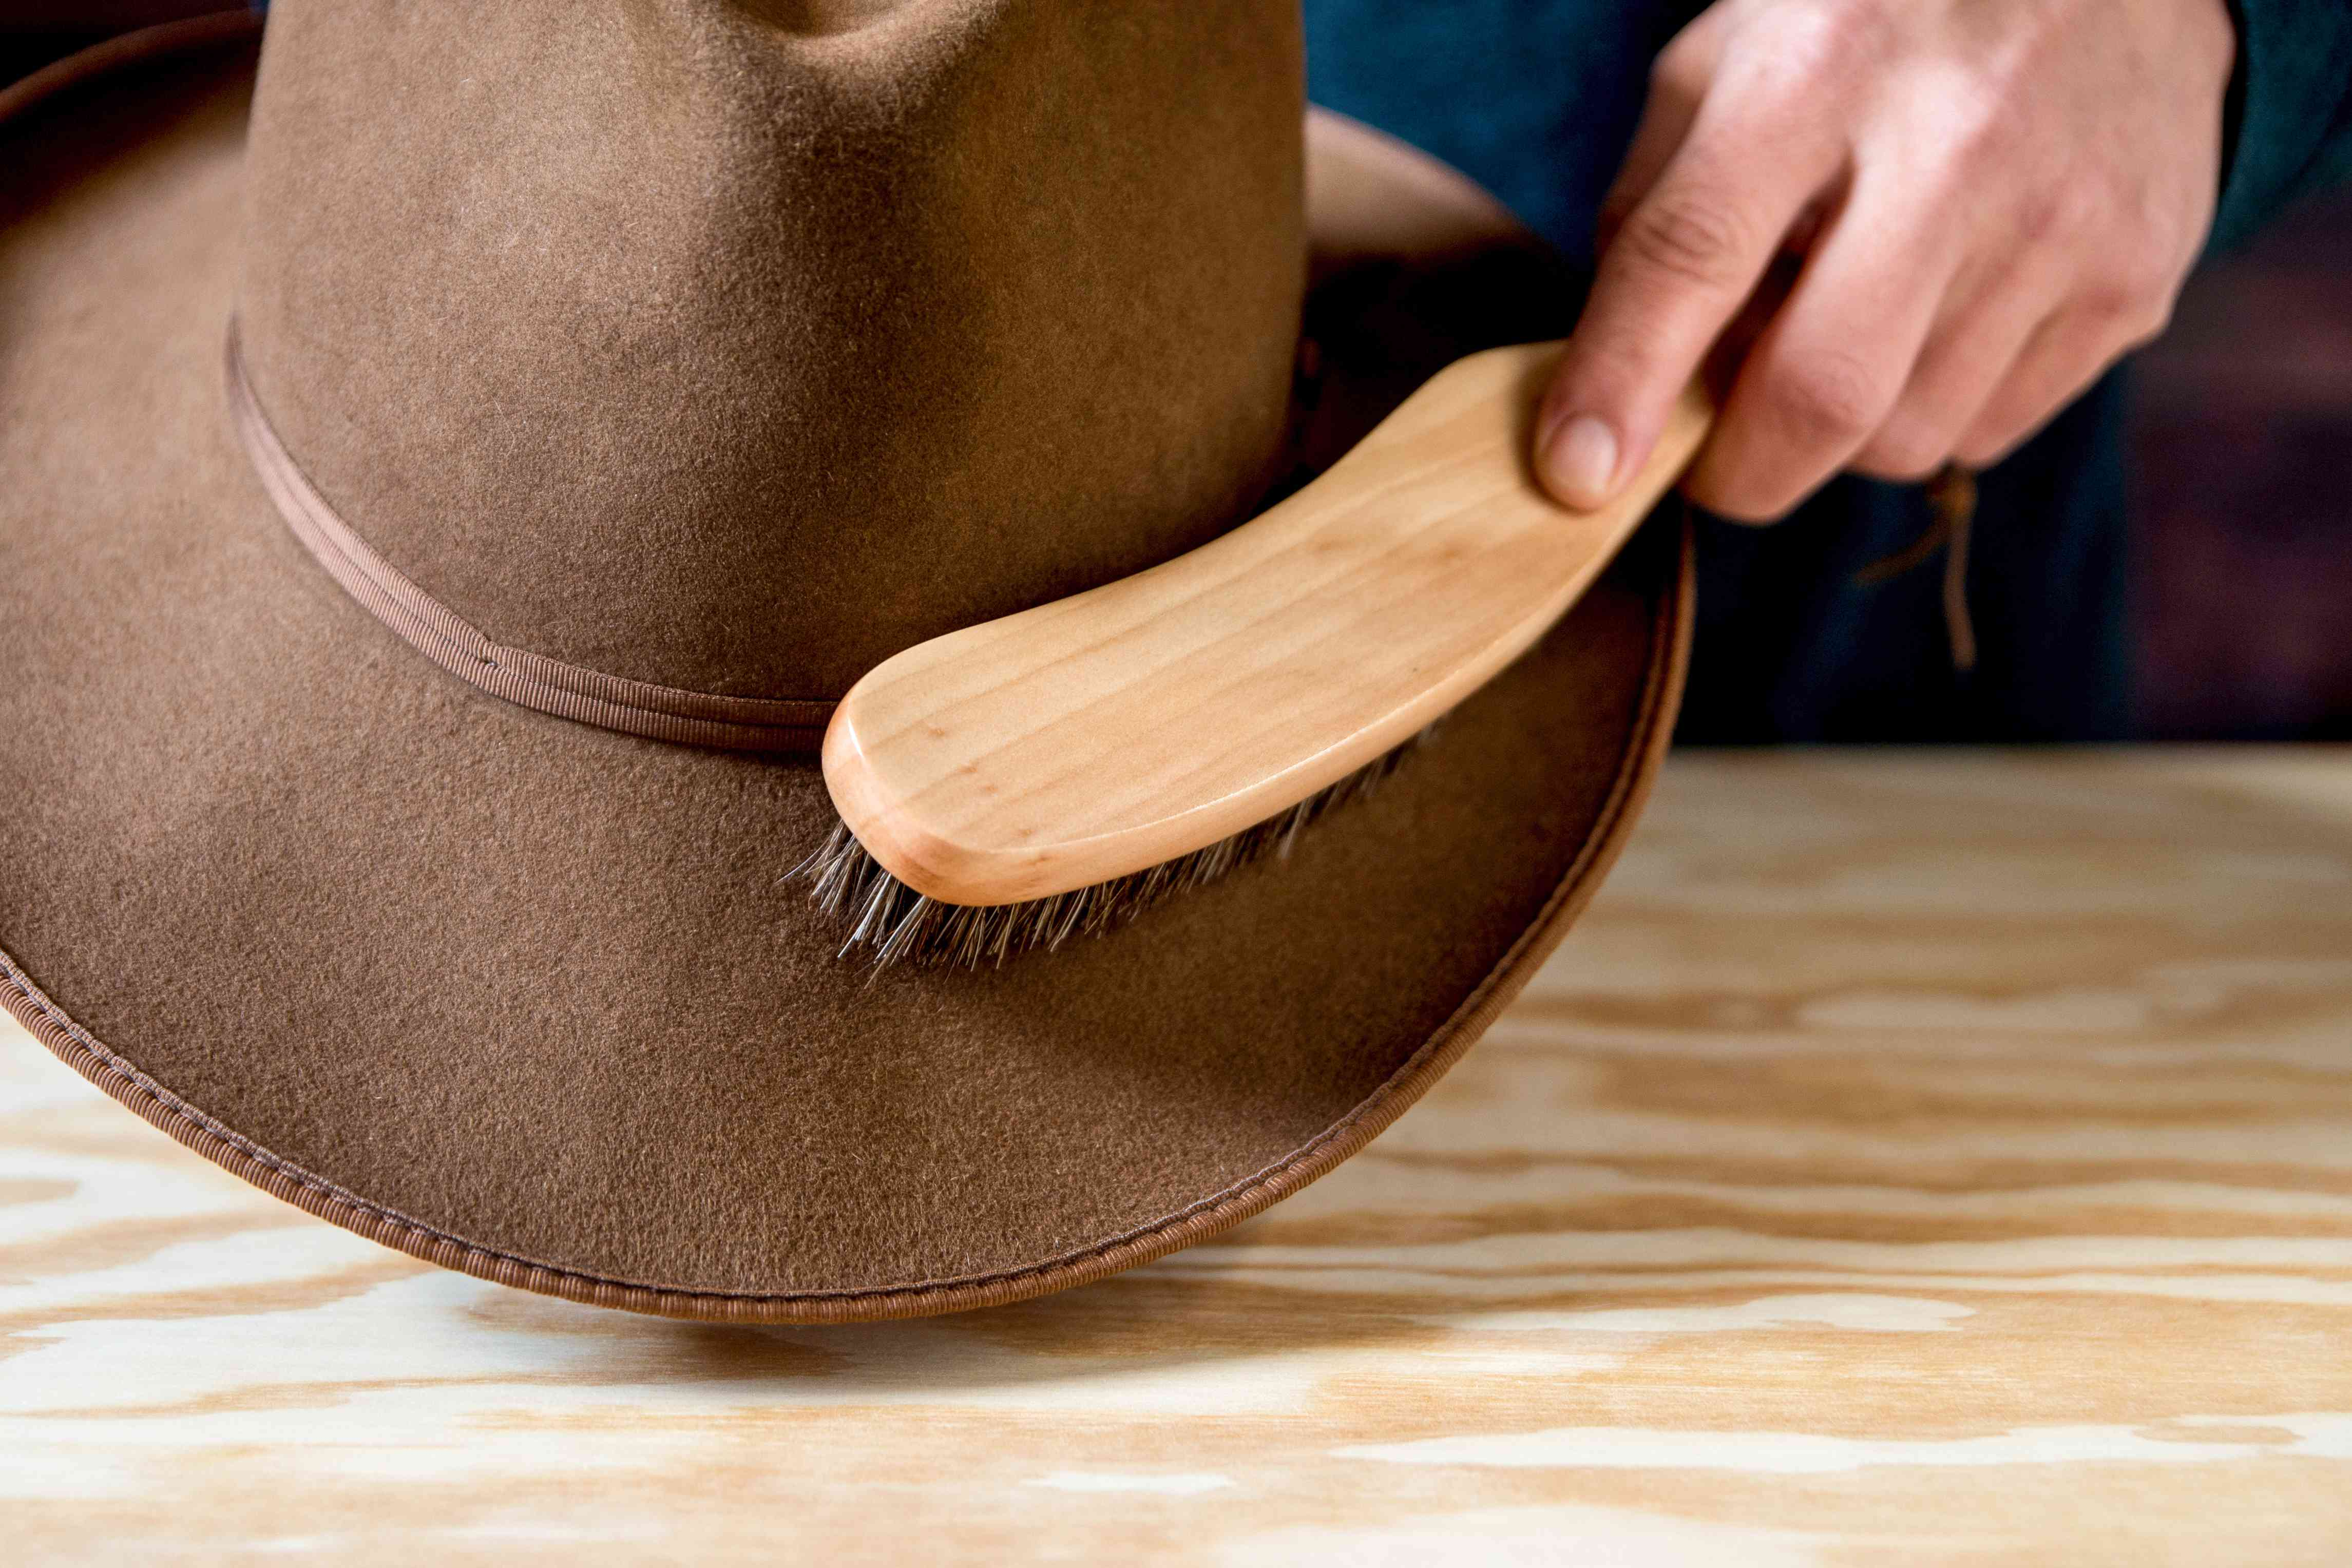 Hats stetson made are where Stetson